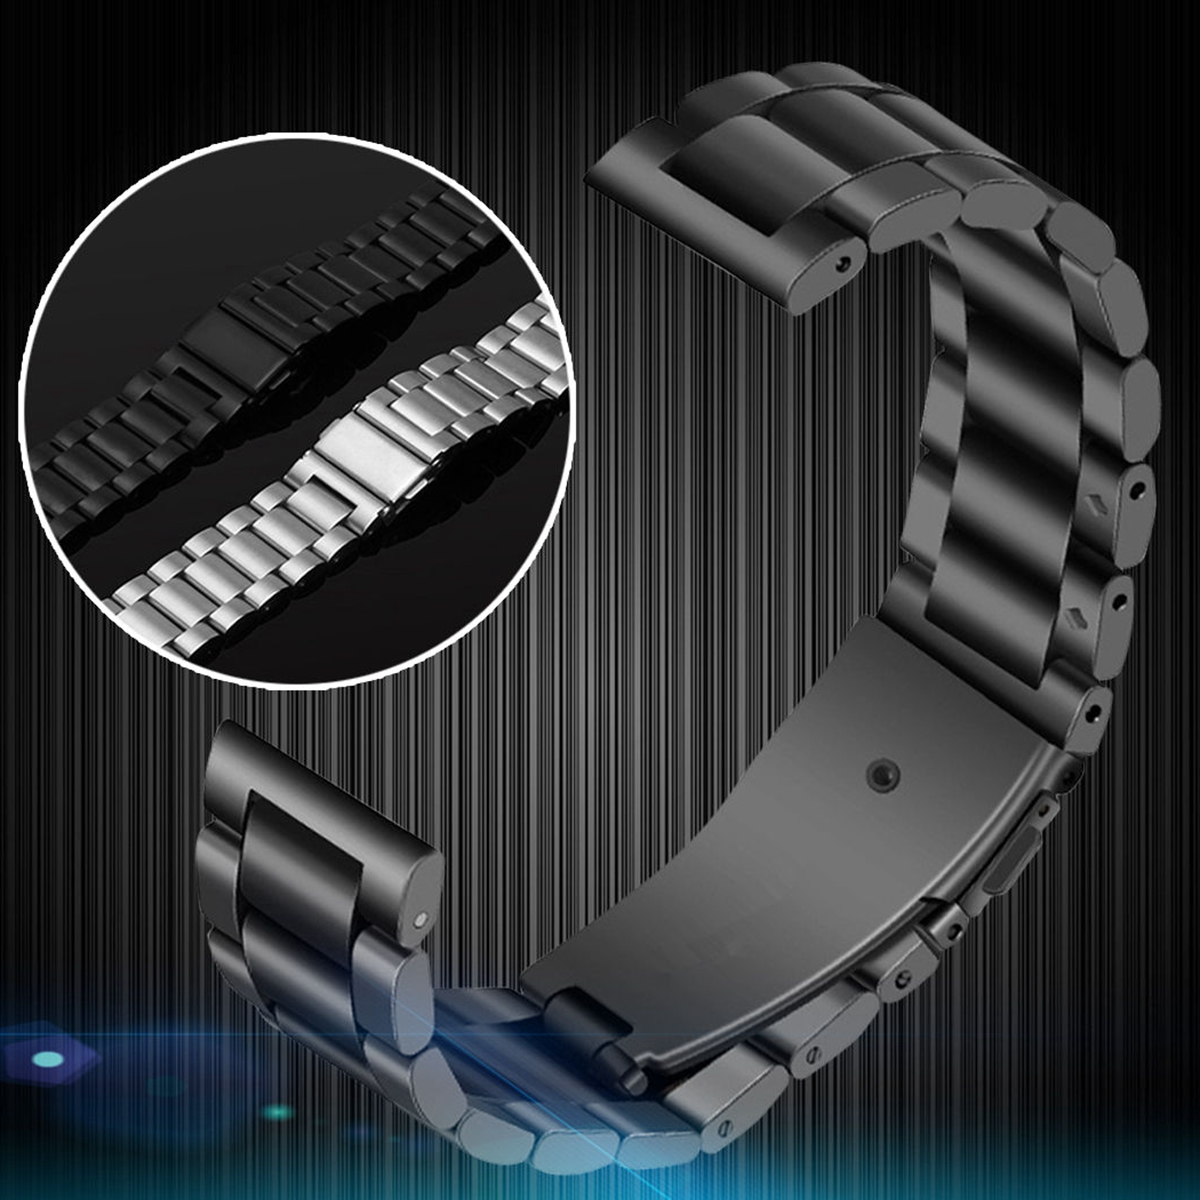 Classic Watch for Band Stainless Steel Strap for Bands for Samsung Gear Sport S2 Classic SM-R732 SM-R735 Smartwatch